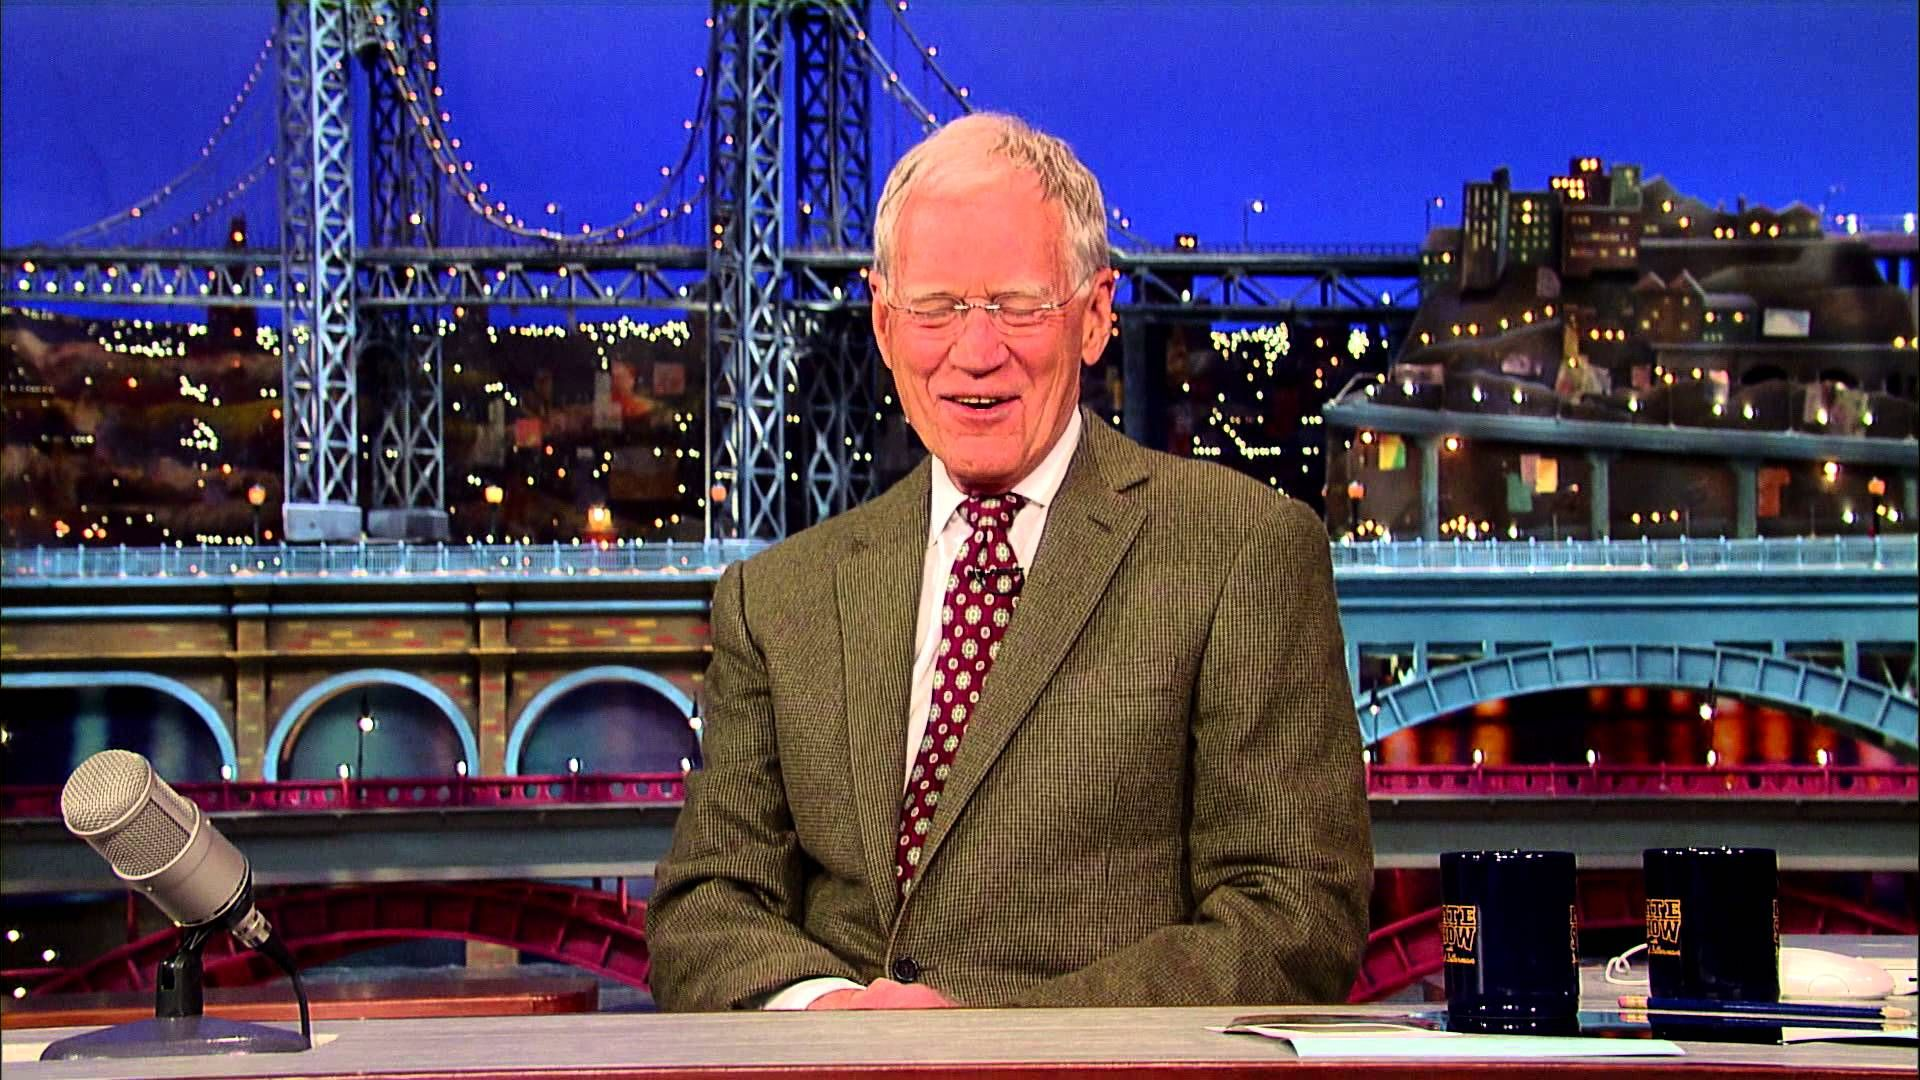 David Letterman Announces His Retirement From The Late Show For Sometime In 2015